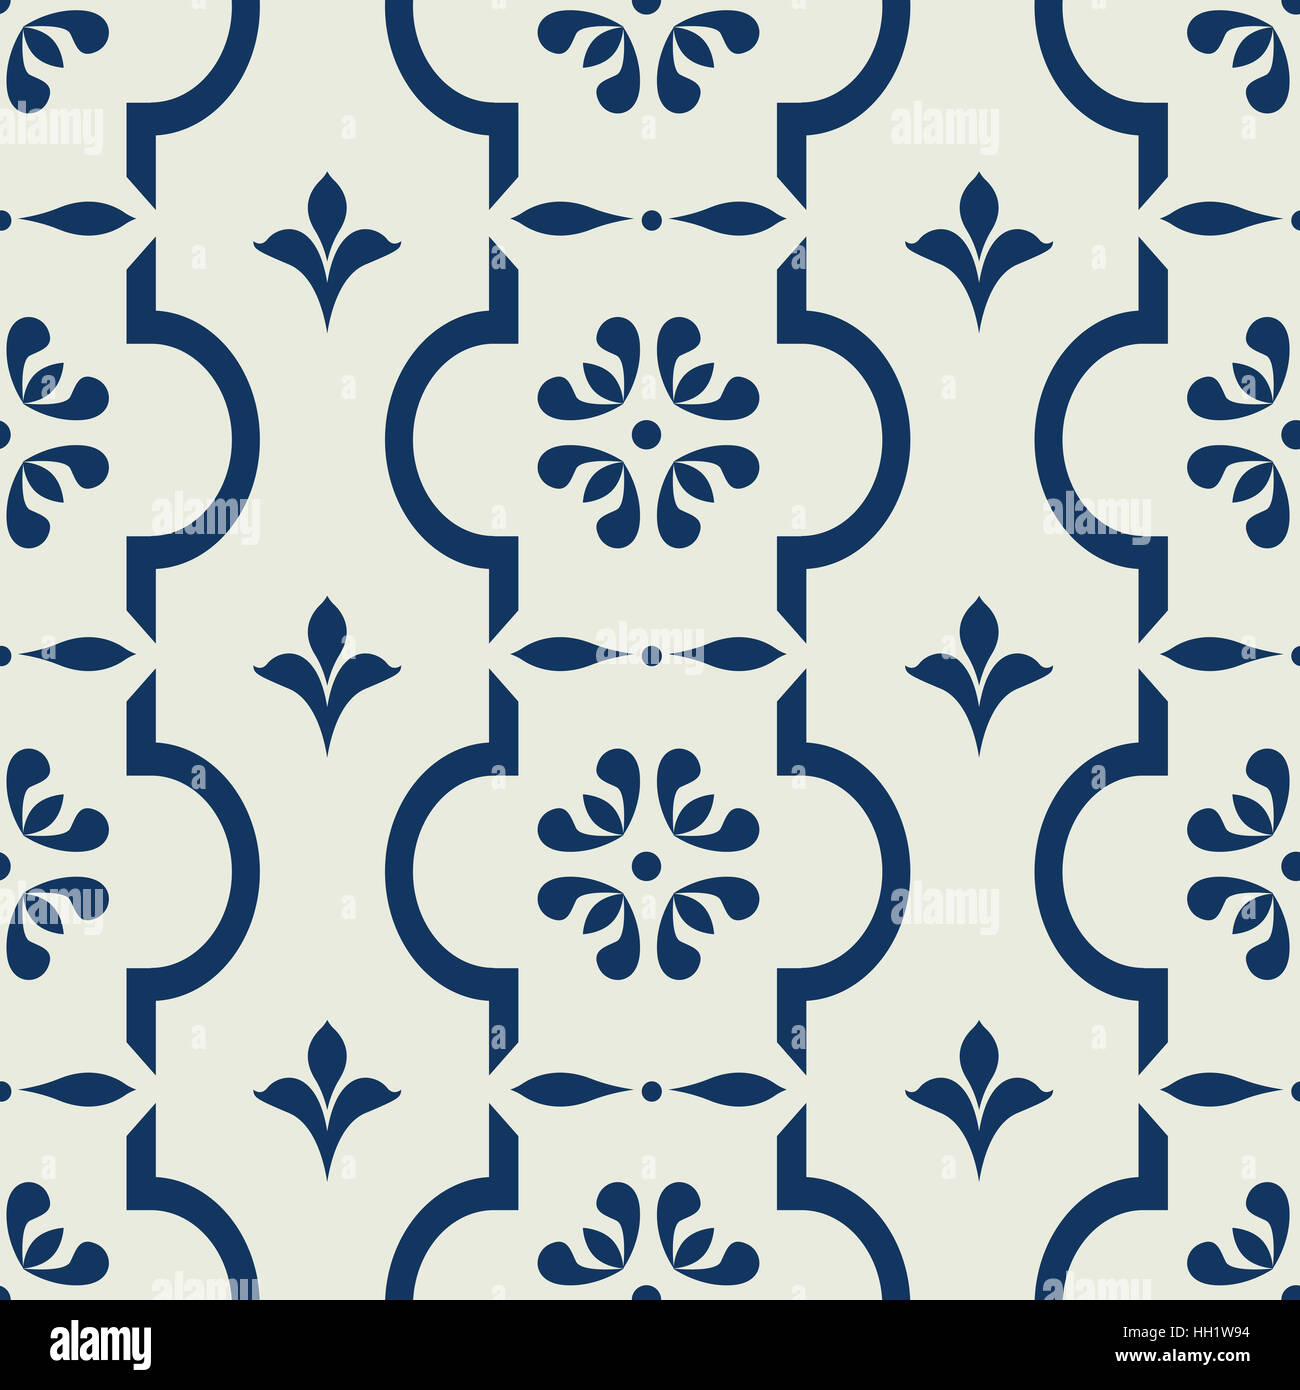 Tileable Wallpaper Texture Seamless Repeating Vintage Background For Textile Design Fabric